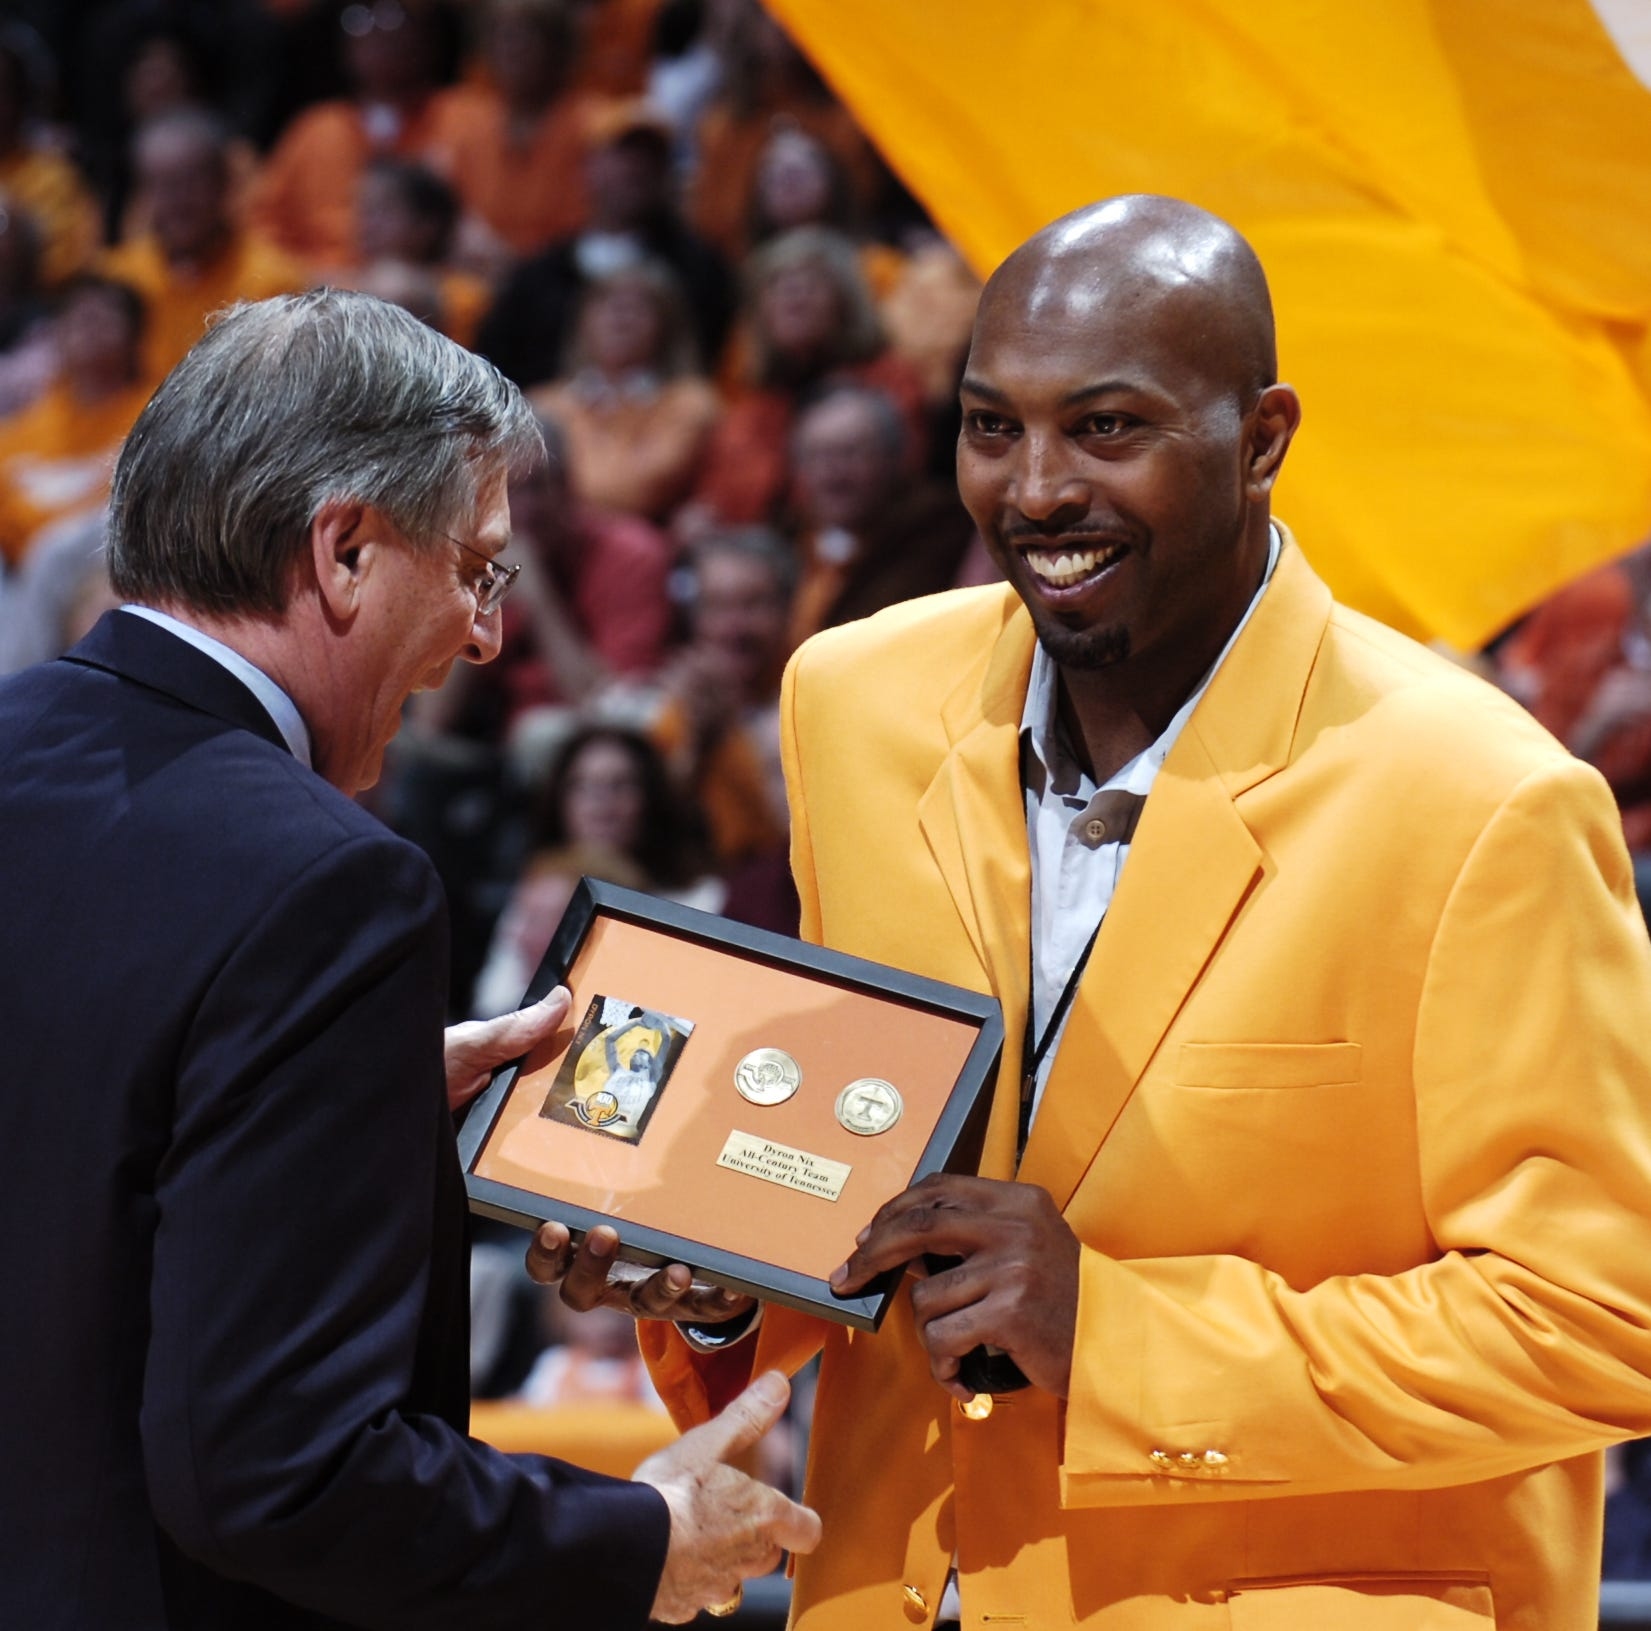 Former Vols gone too soon, but we hold them in our memories